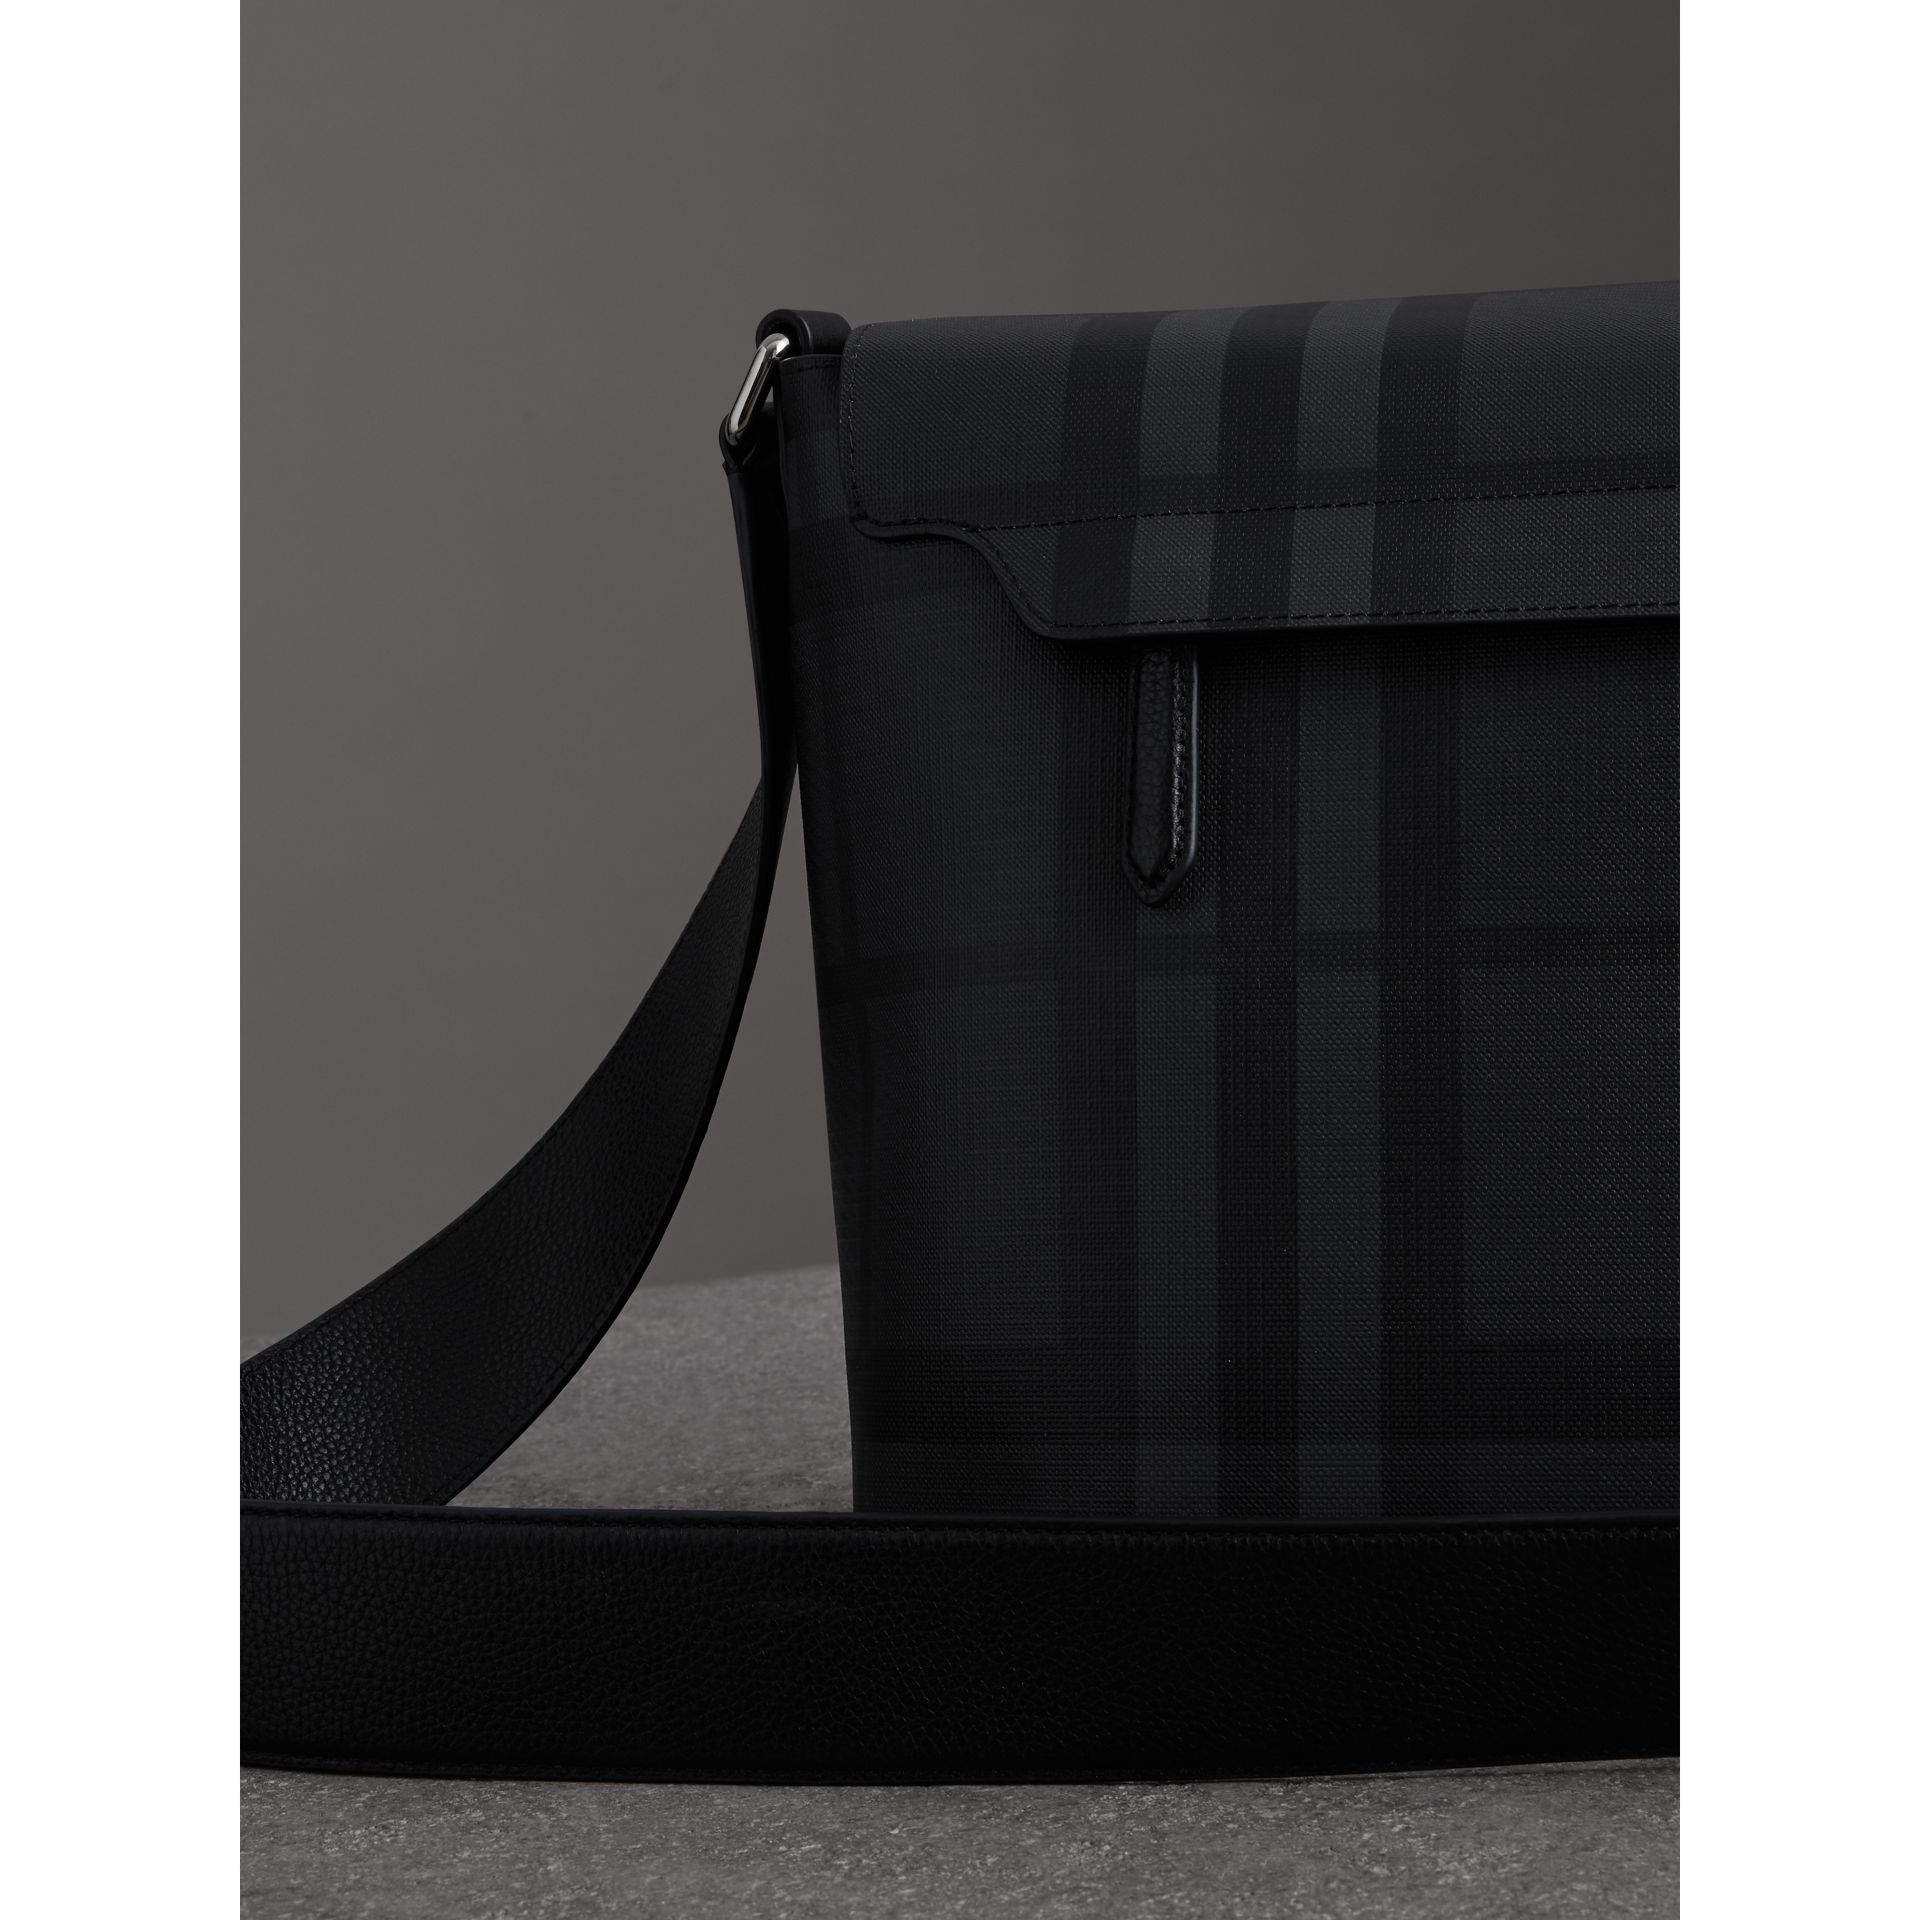 Large Logo Print Messenger Bag in Charcoal - Men | Burberry Singapore - gallery image 4